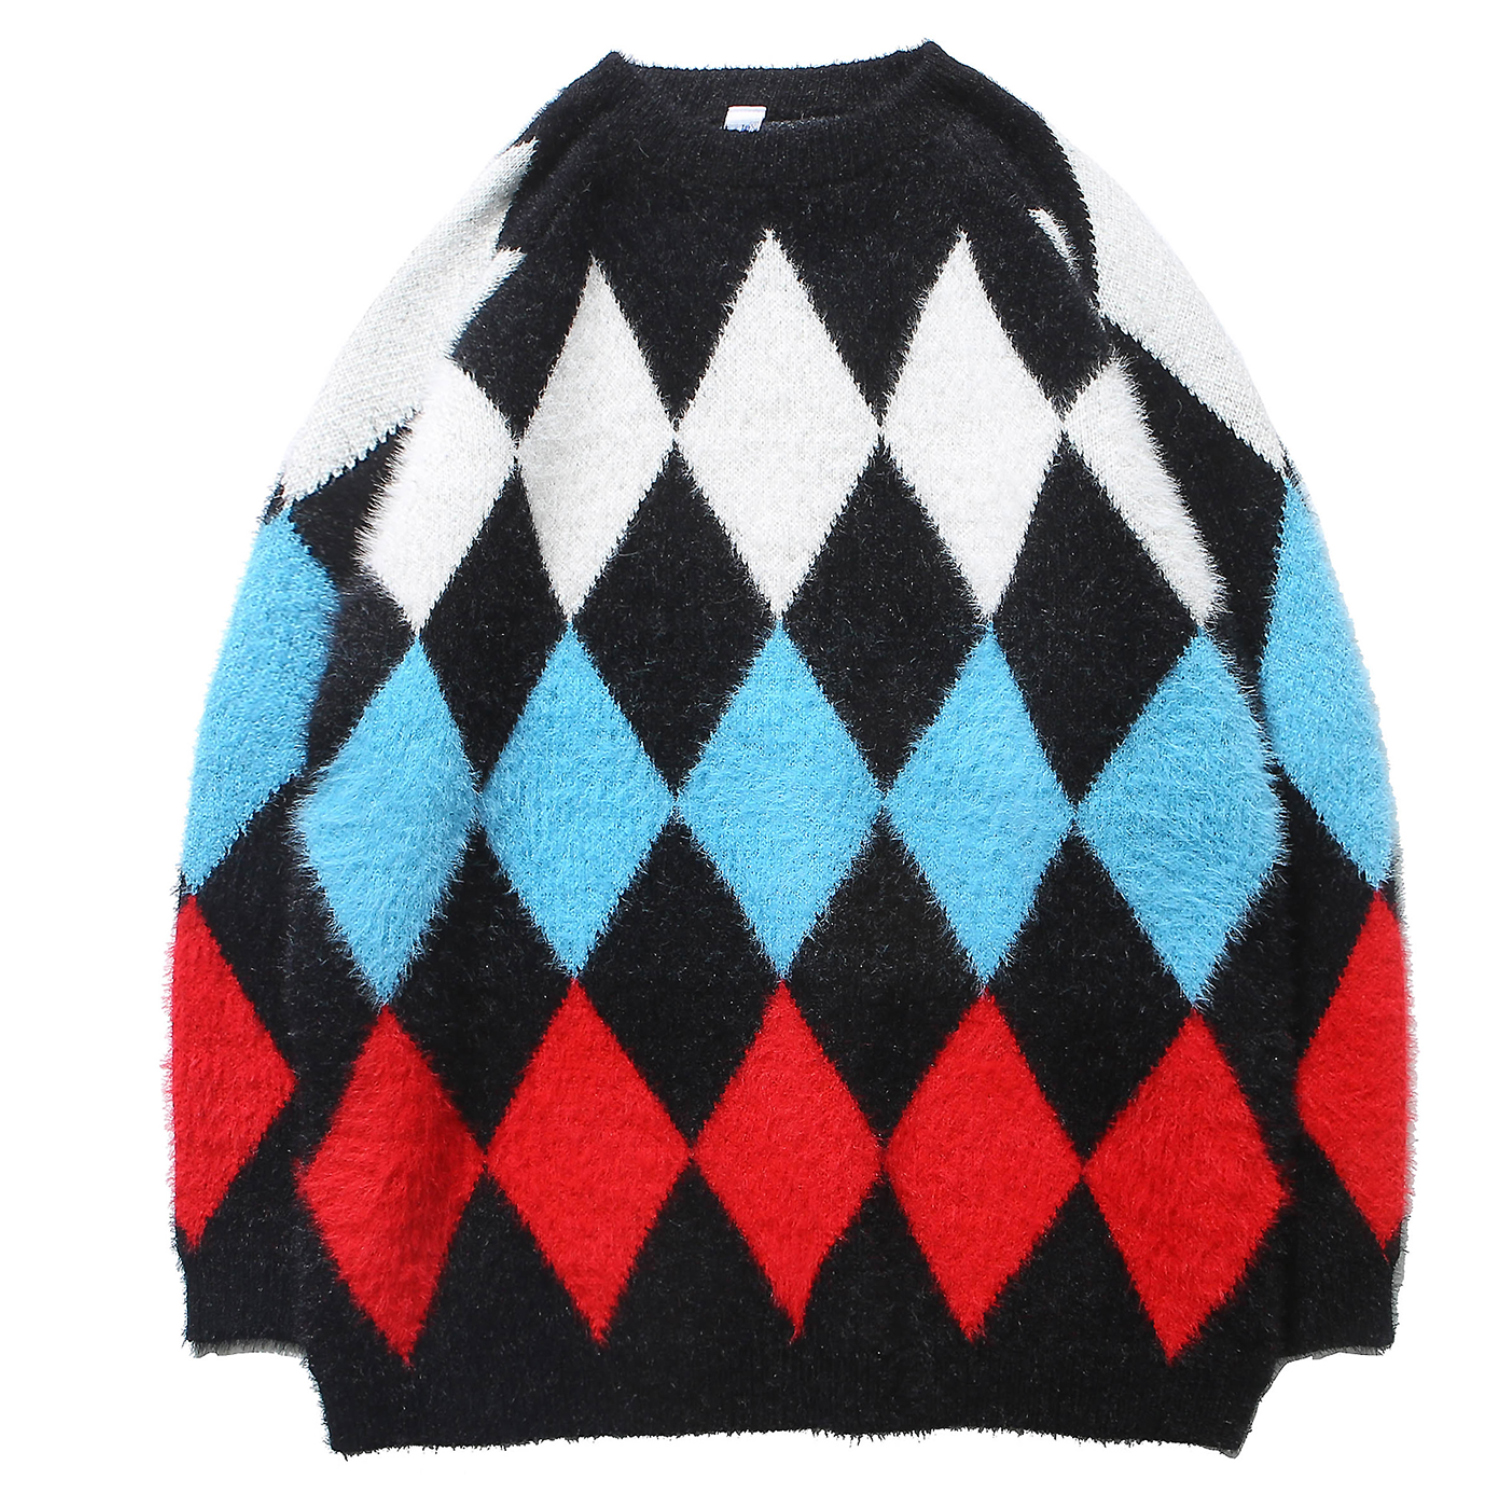 Men's Sweater Fine Knitted Plaid Jumpers Cashmere Pullover Stitching Colors Tops Fashion For Young Boys Outdoor Autumn Winter